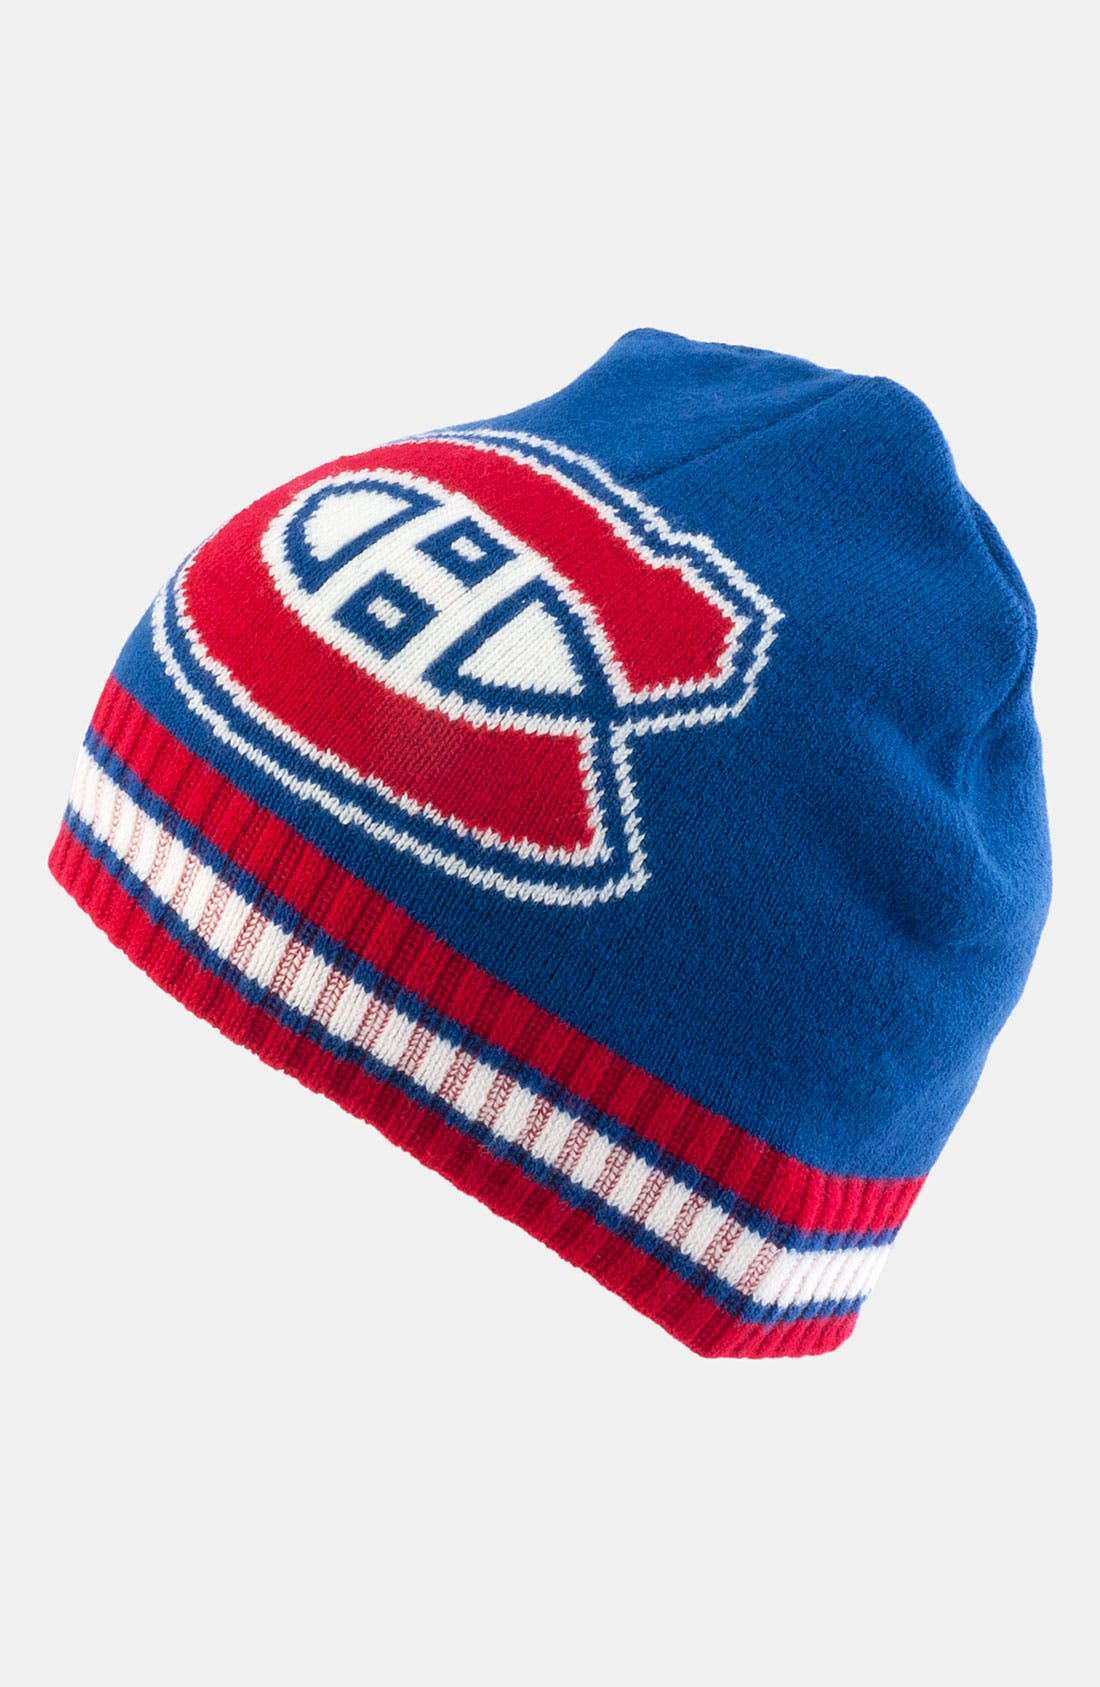 Alternate Image 1 Selected - American Needle 'Montreal Canadiens - Right Wing' Knit Hat